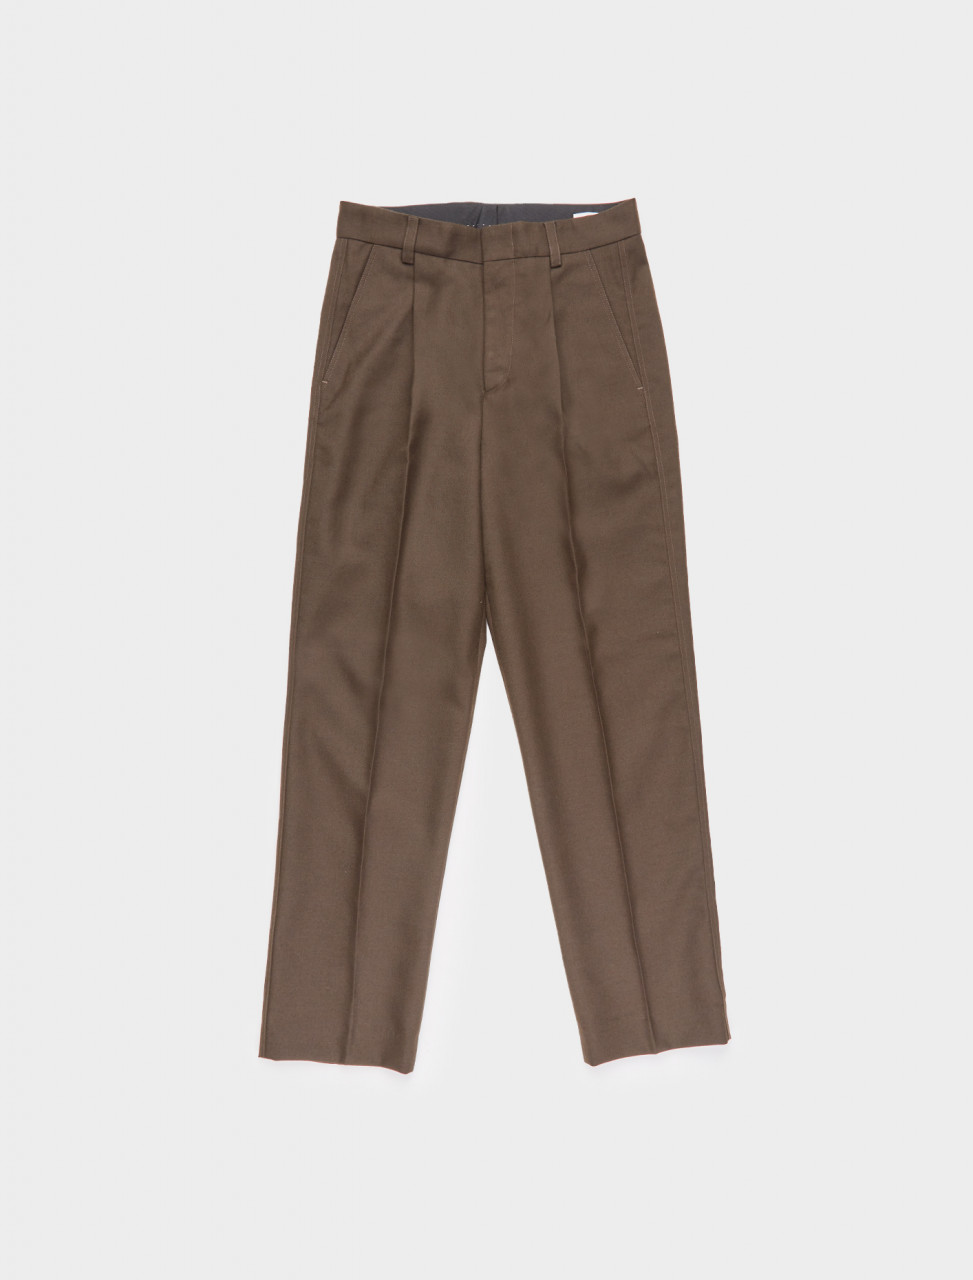 344-123457-002 ANOTHER ASPECT ANOTHER PANTS 1.0 ESPRESSO